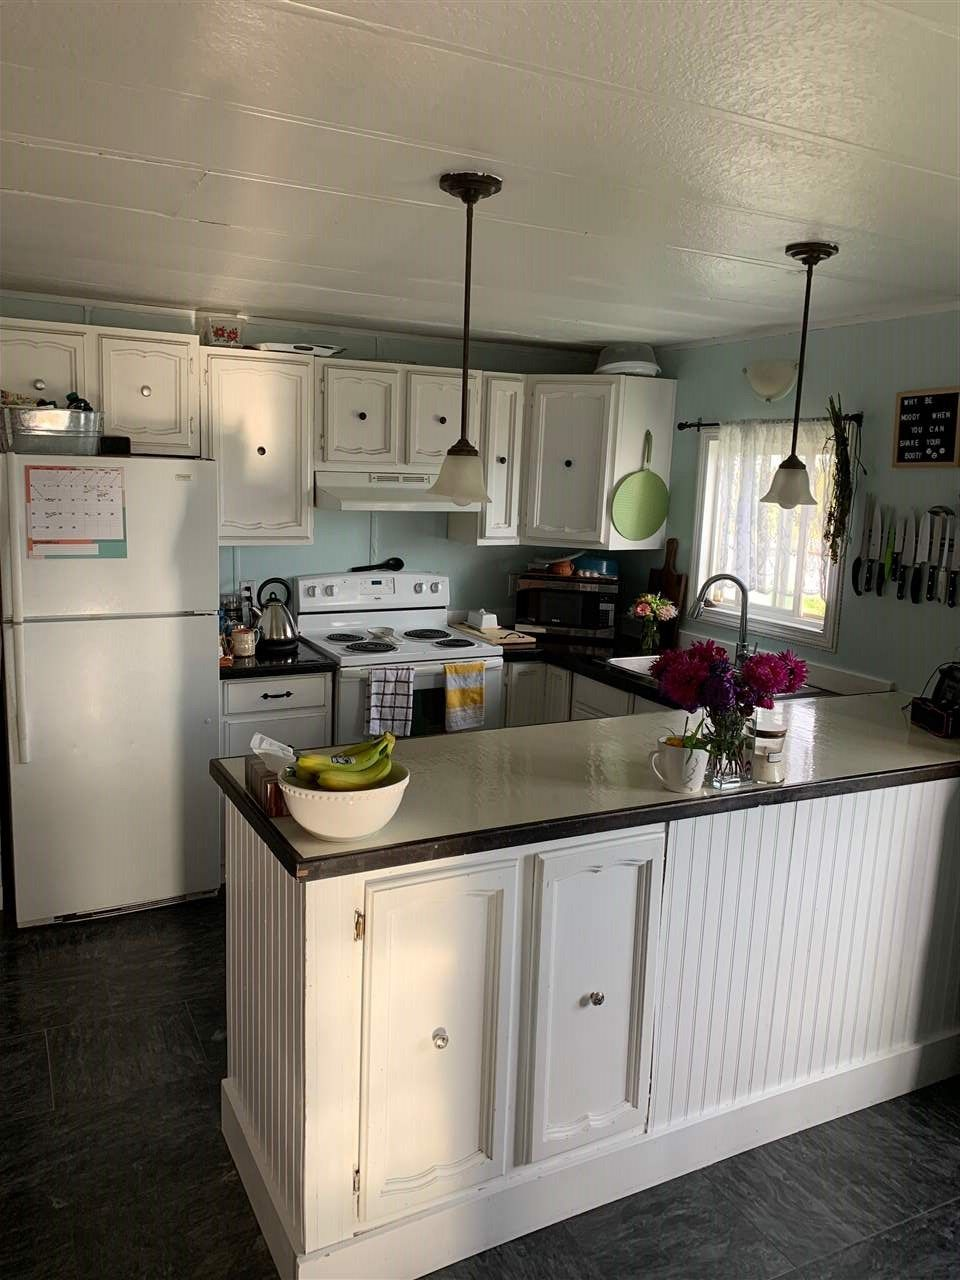 """Photo 5: Photos: 78 8420 ALASKA Road in Fort St. John: Fort St. John - City SE Manufactured Home for sale in """"PEACE COUNTRY"""" (Fort St. John (Zone 60))  : MLS®# R2495486"""